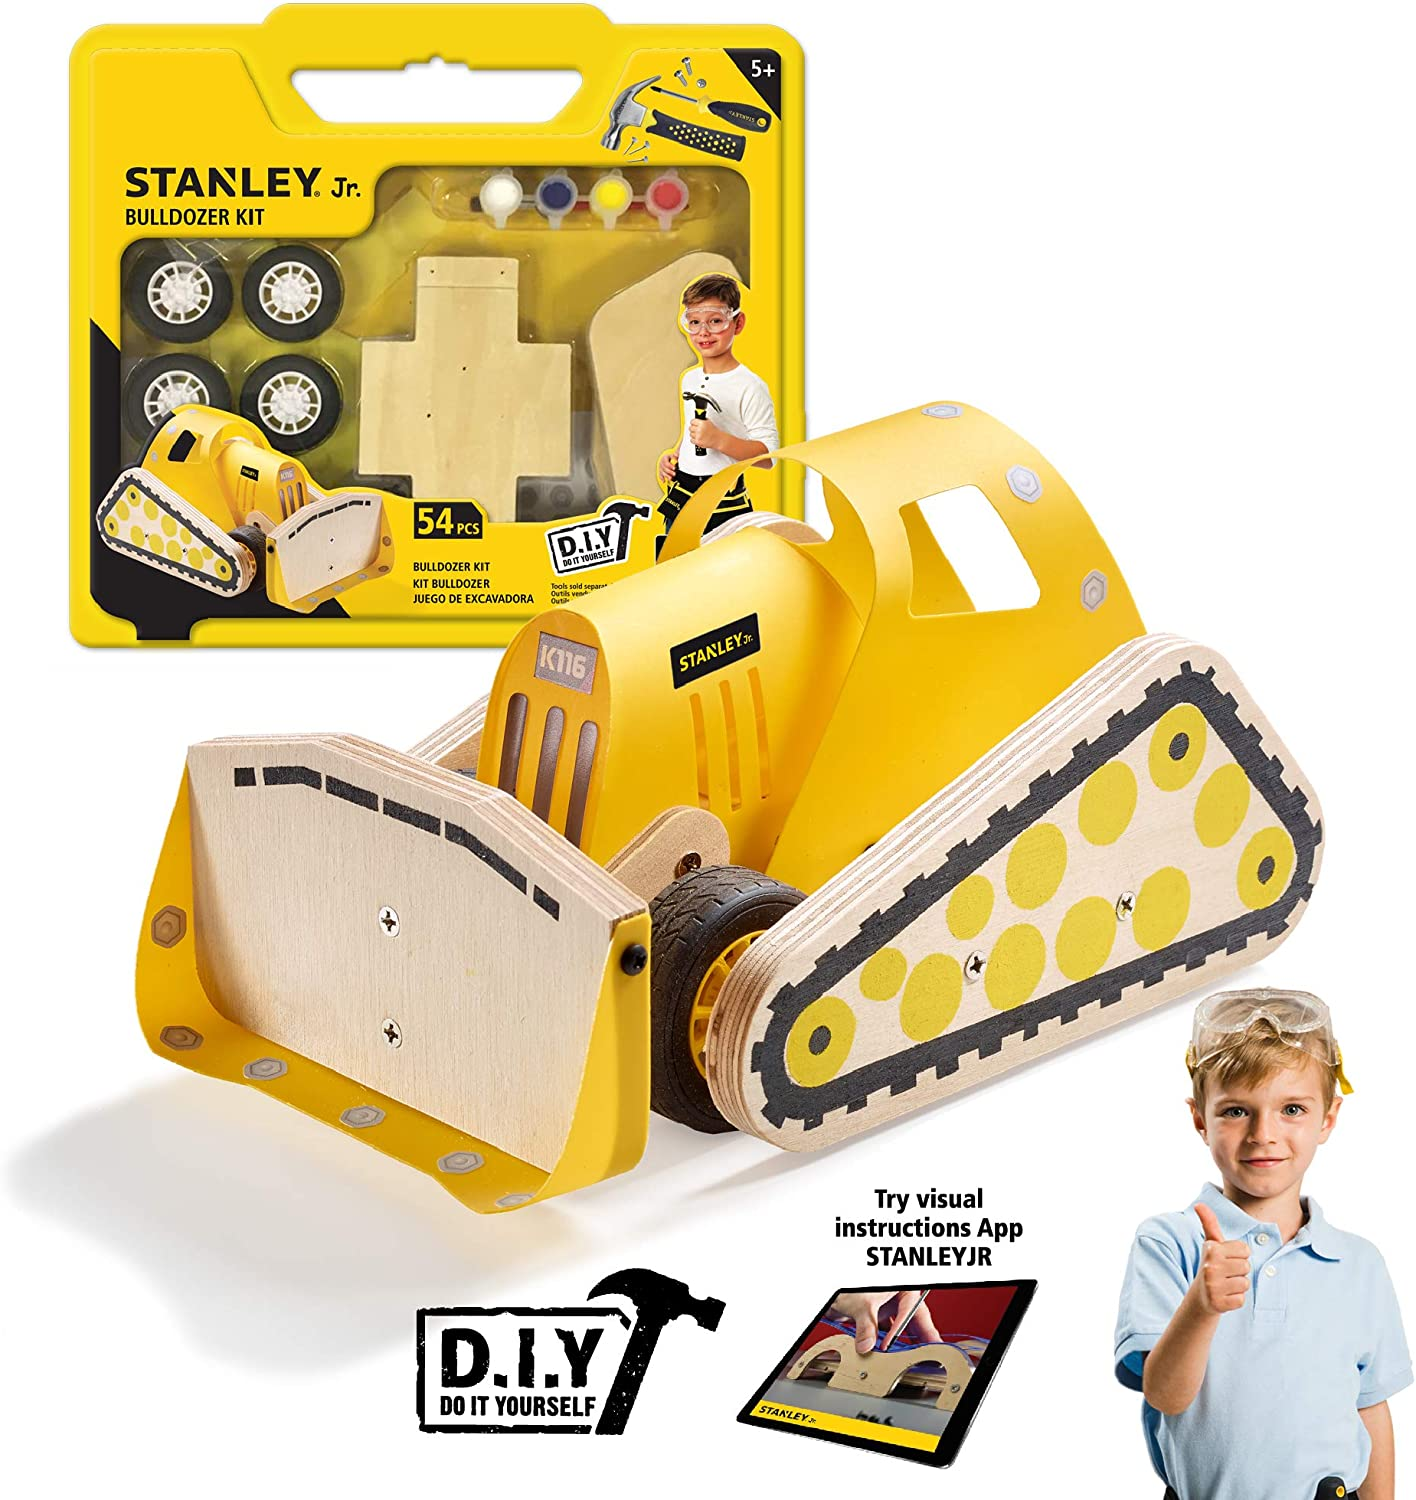 Bulldozer Toy Truck Construction Play Small Wood Craft Kit Stanley Jr DIY Toy Kids Building Kit